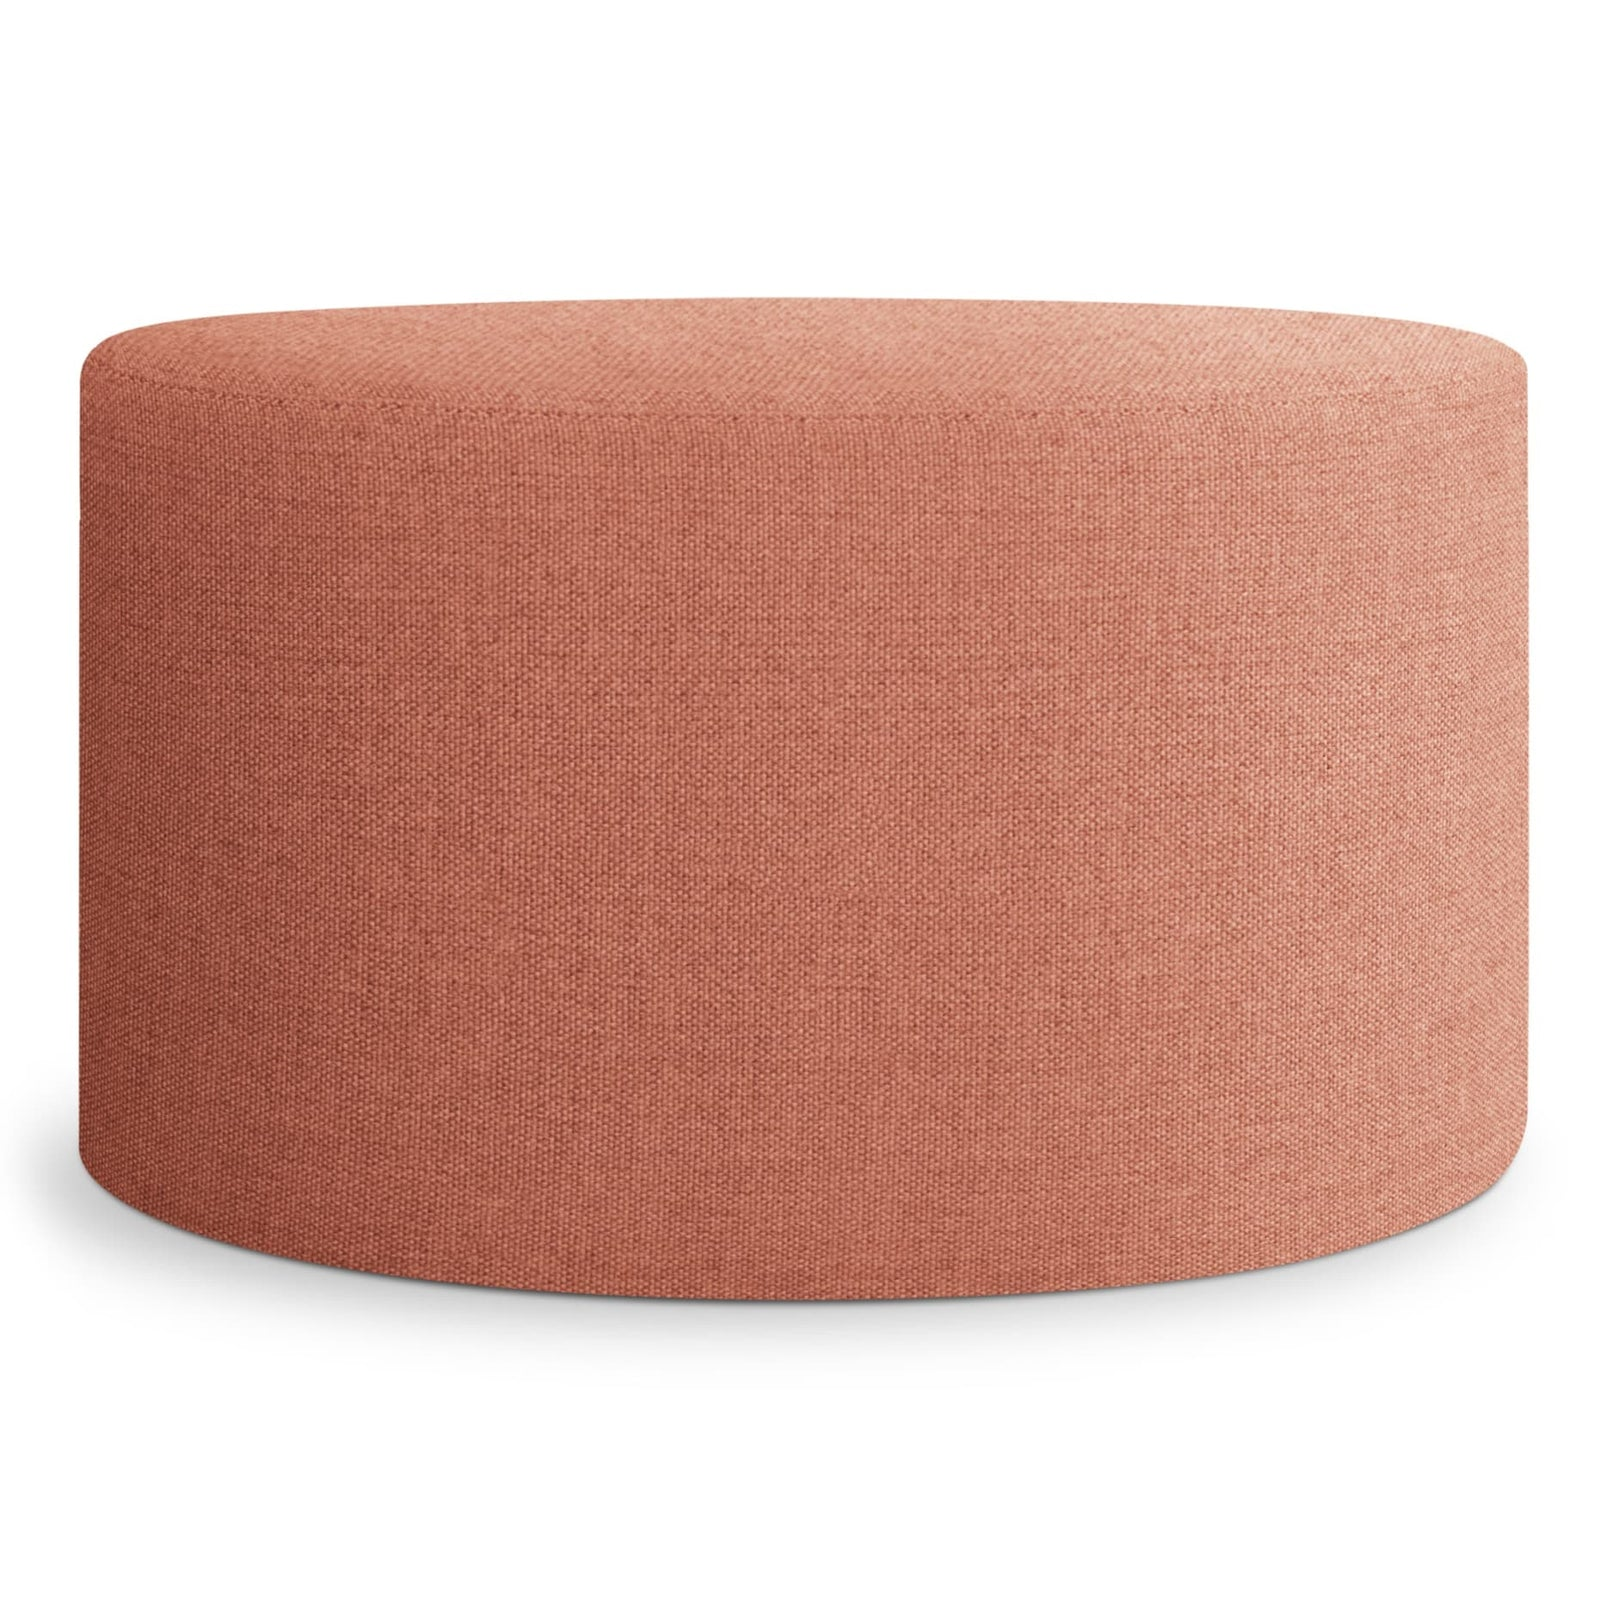 Blu Dot Furniture Large / Toohey Tomato Bumper Outdoor Ottoman